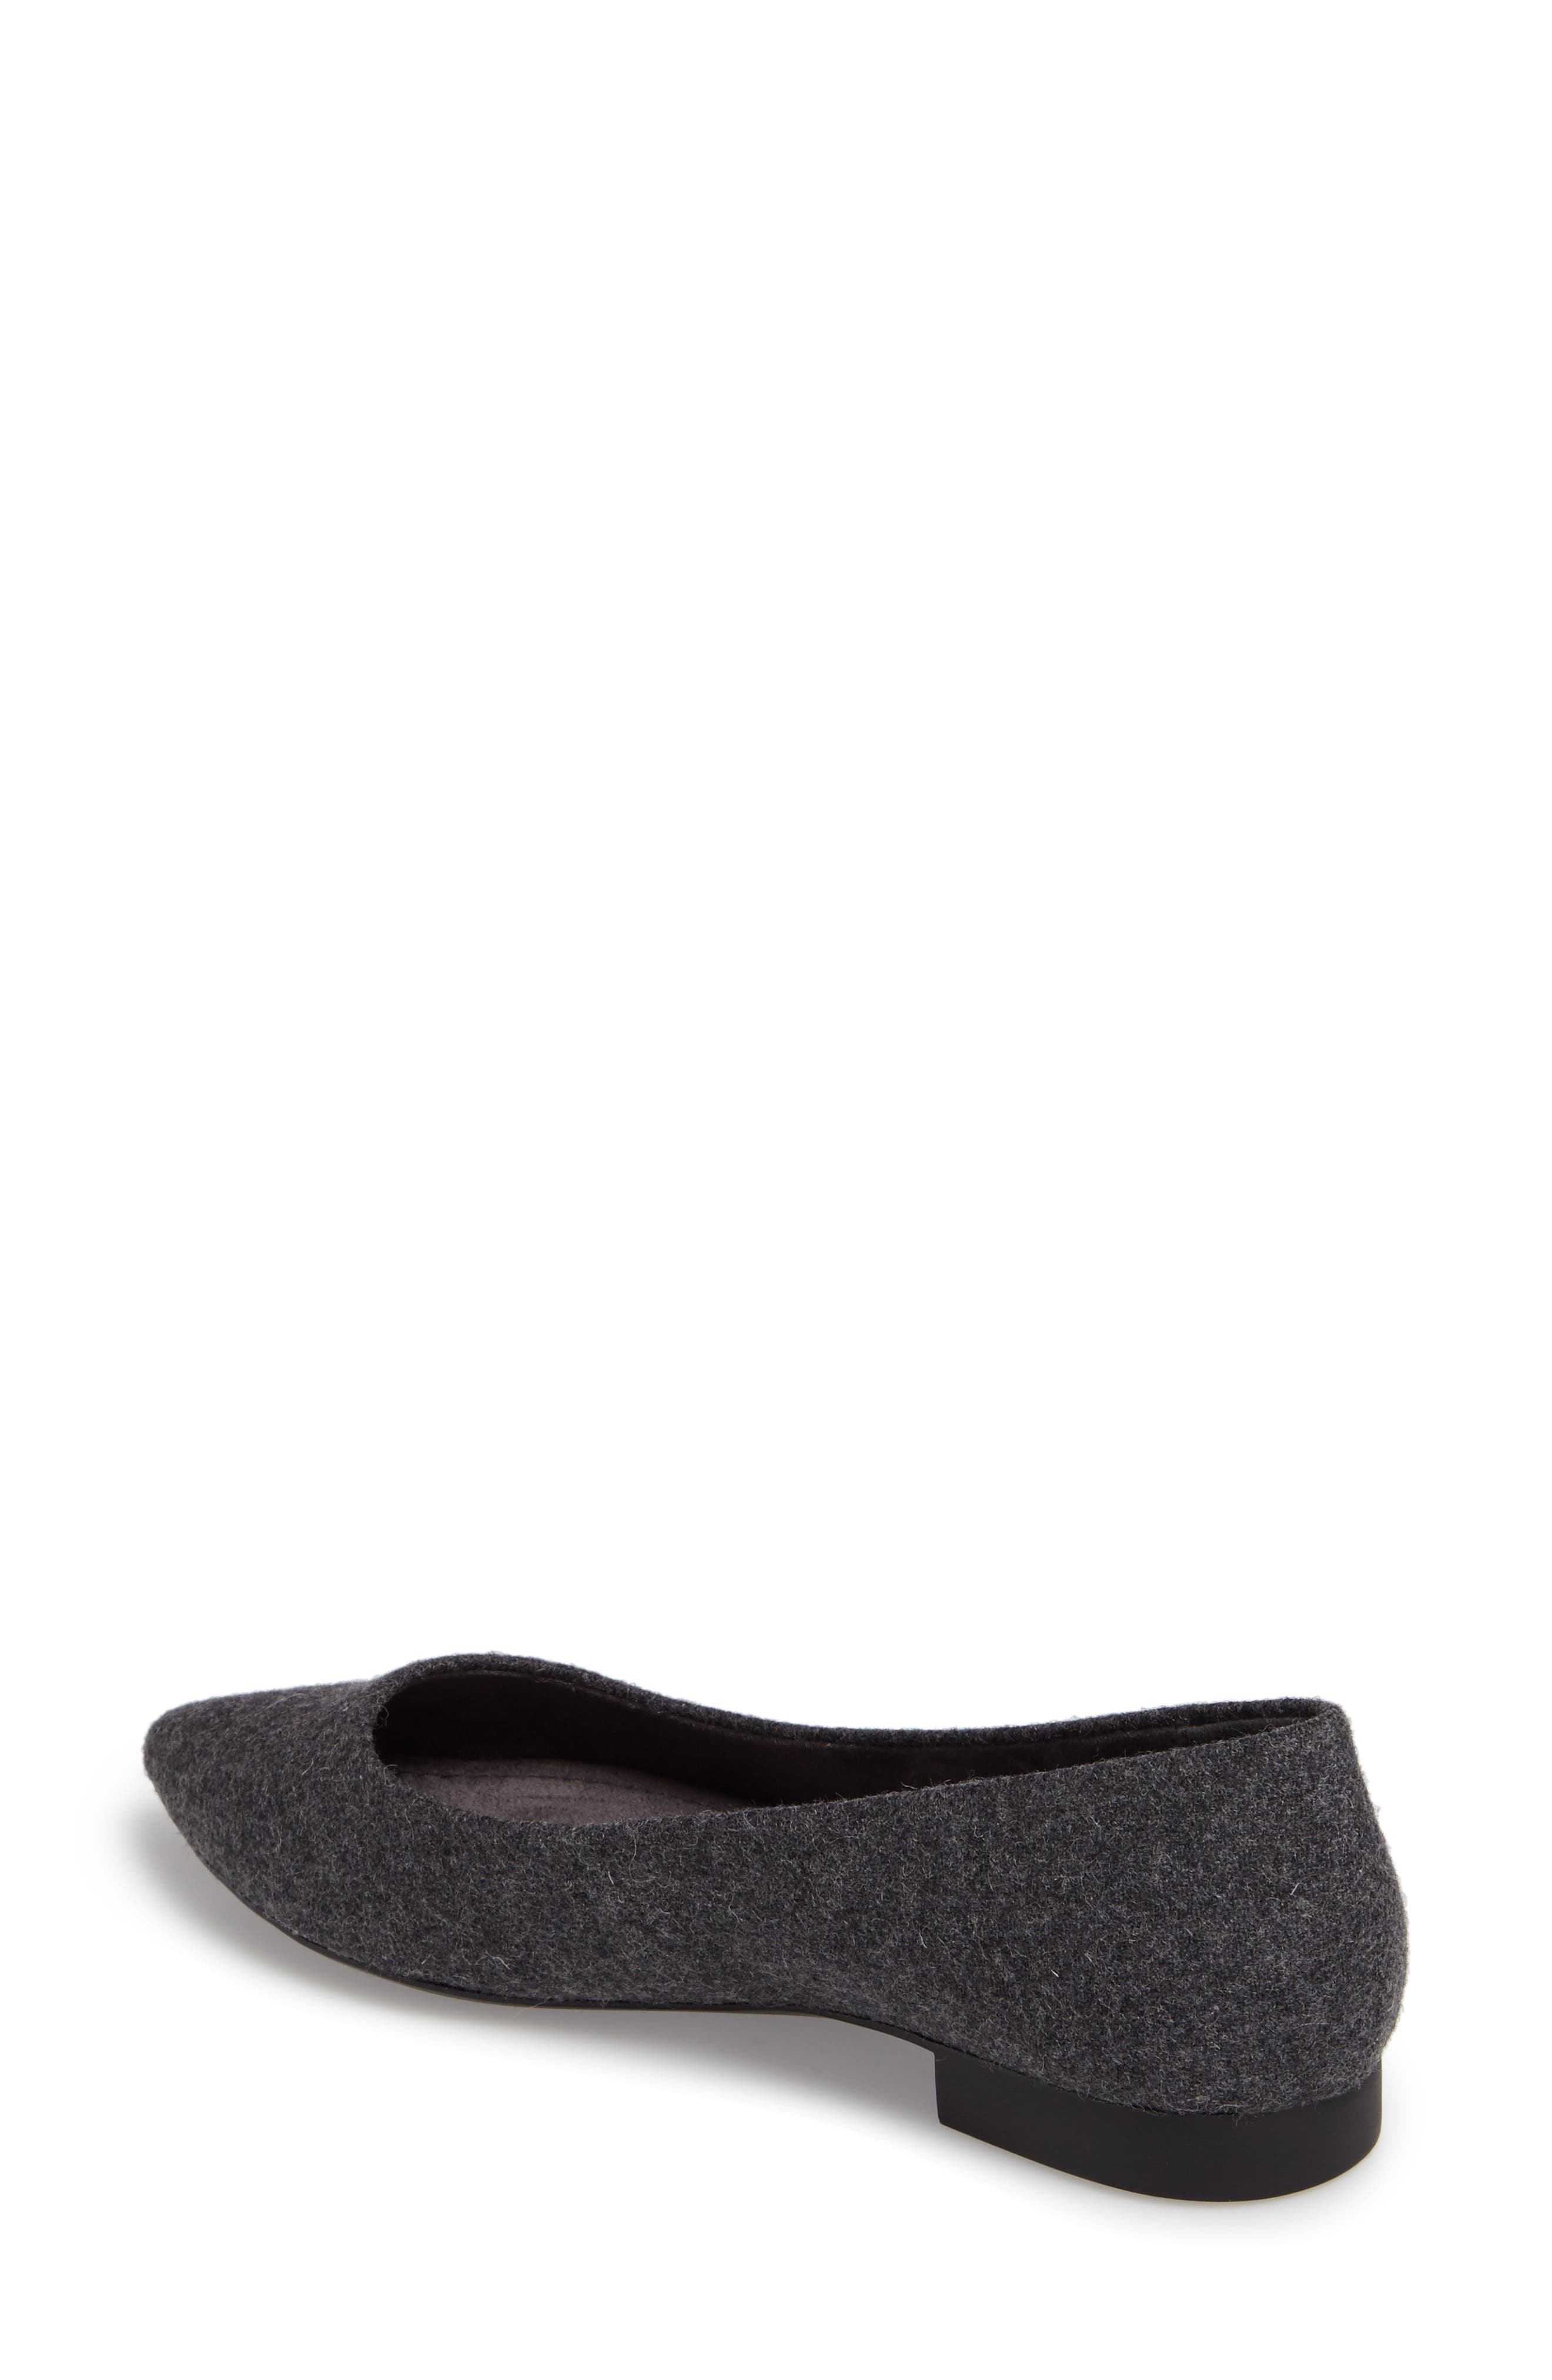 BELLA VITA, 'Vivien' Pointy Toe Flat, Alternate thumbnail 2, color, GREY FLANNEL FABRIC